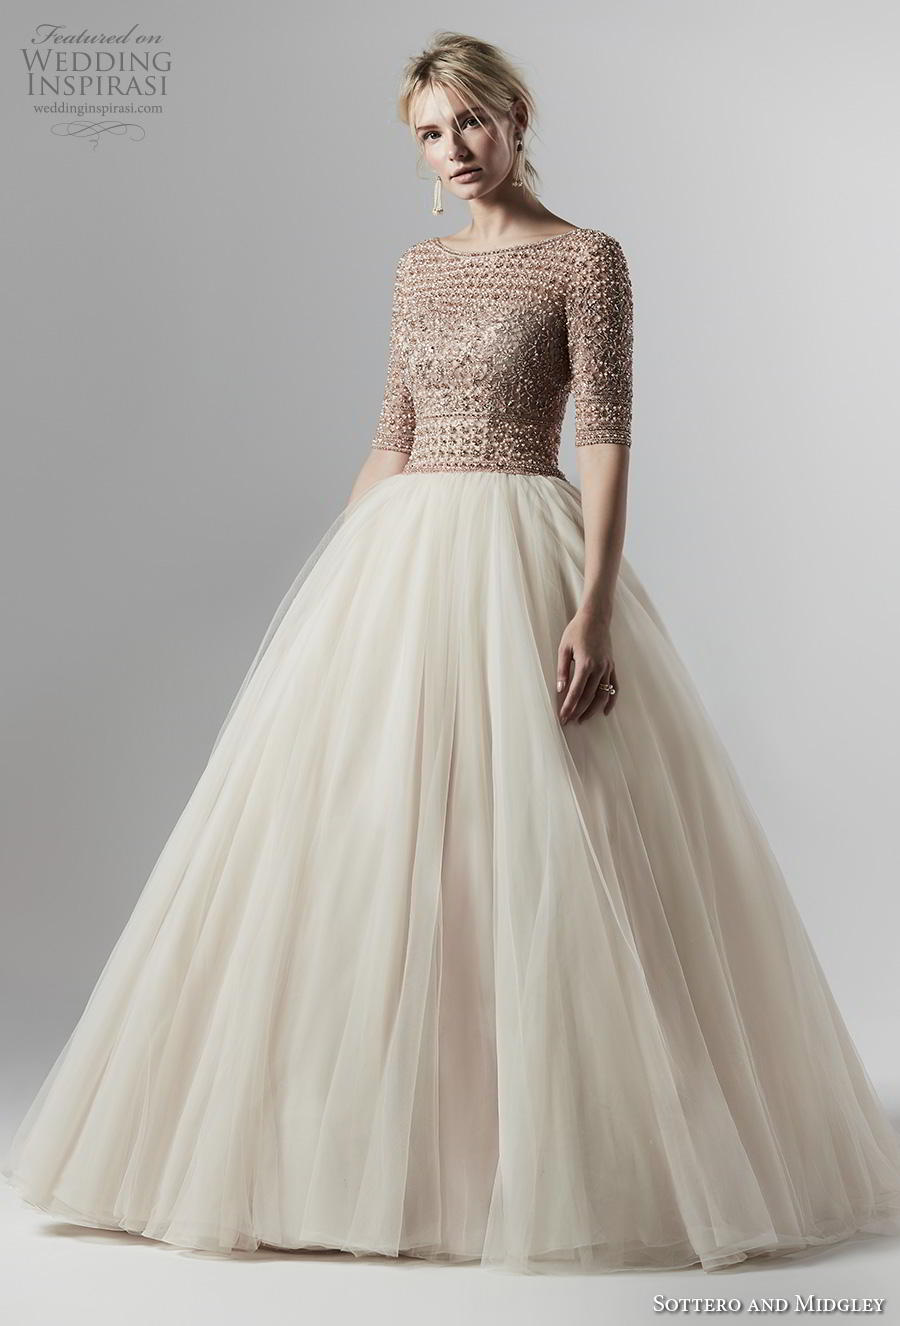 sottero and midgley fall 2019 bridal half sleeves bateau neck heavily embellished bodice tulle skirt princess ivory ball gown a  line wedding dress v back chapel train (10) mv